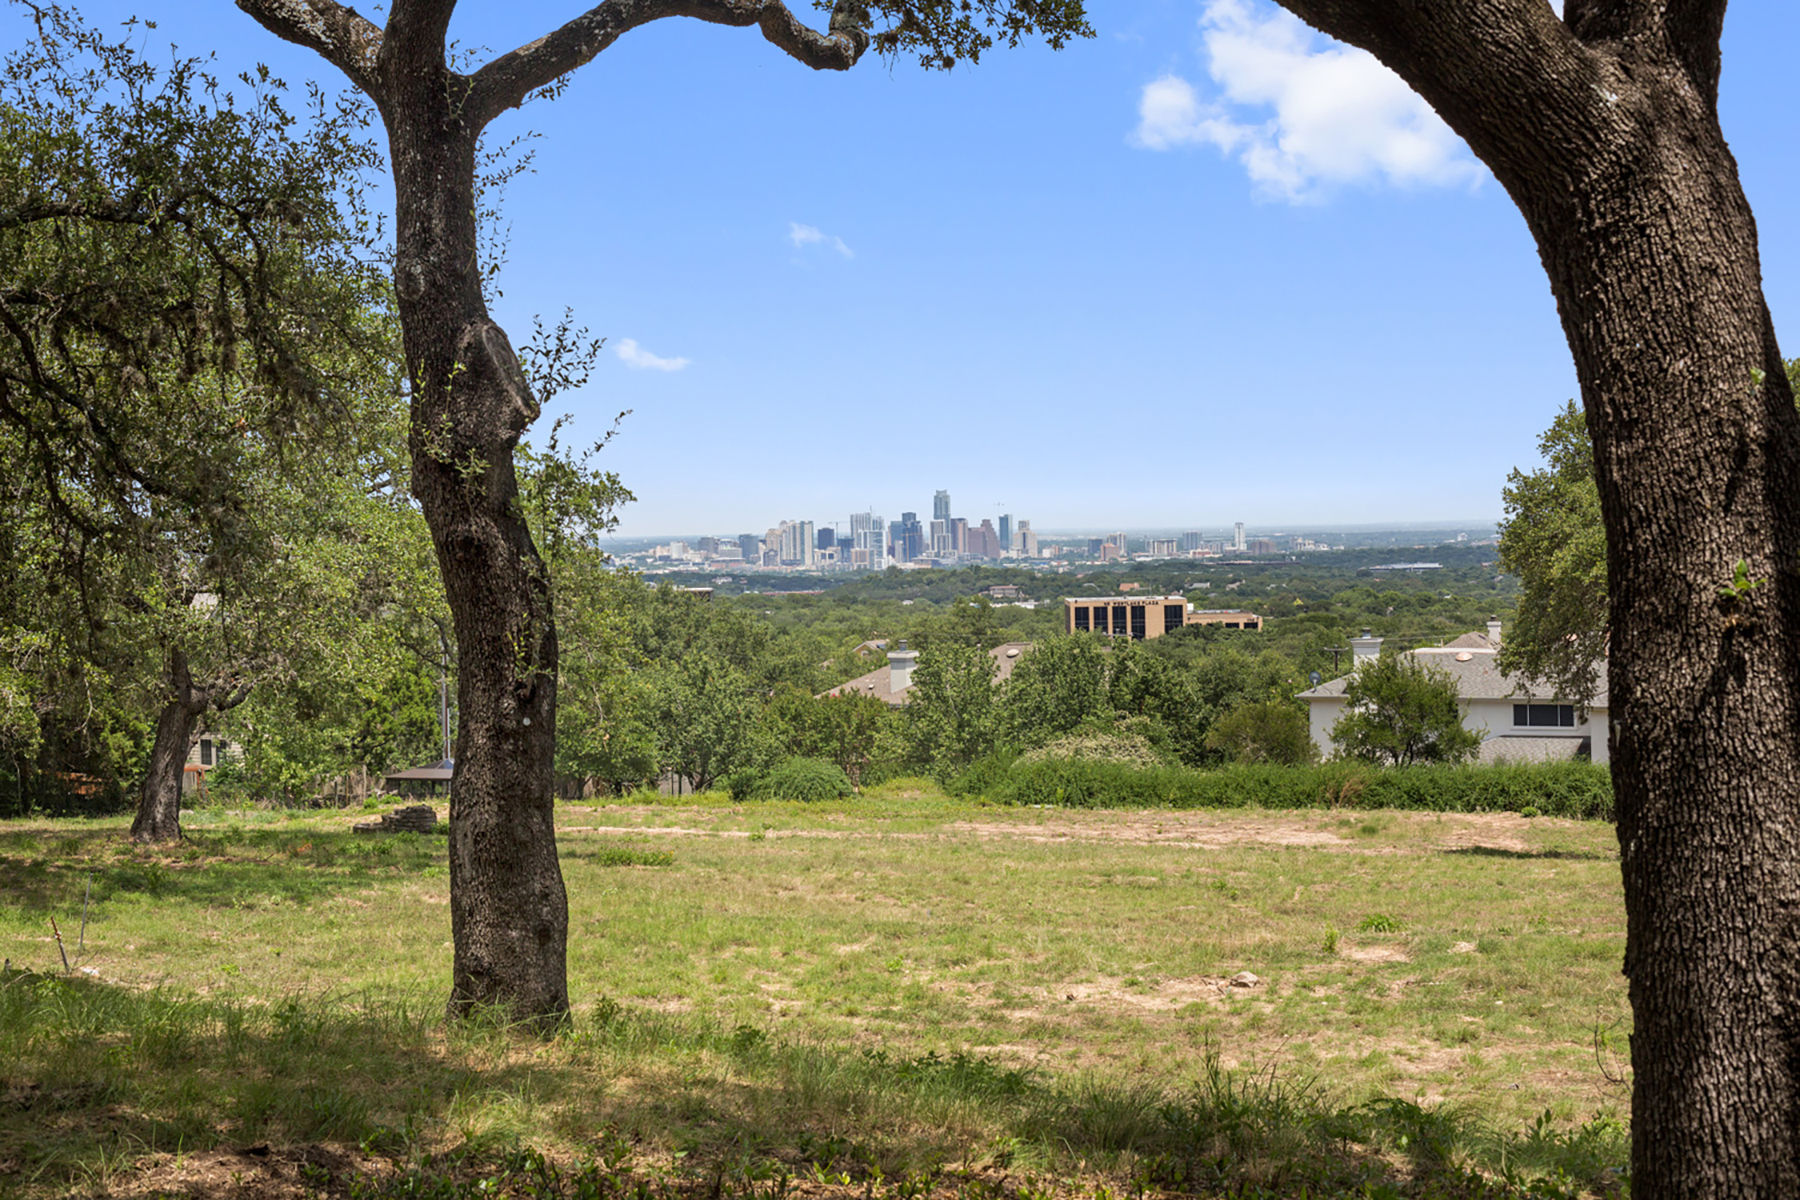 Land for Active at 1758 Camp Craft Road, West Lake Hills, TX 78746 1758 Camp Craft Road West Lake Hills, Texas 78746 United States